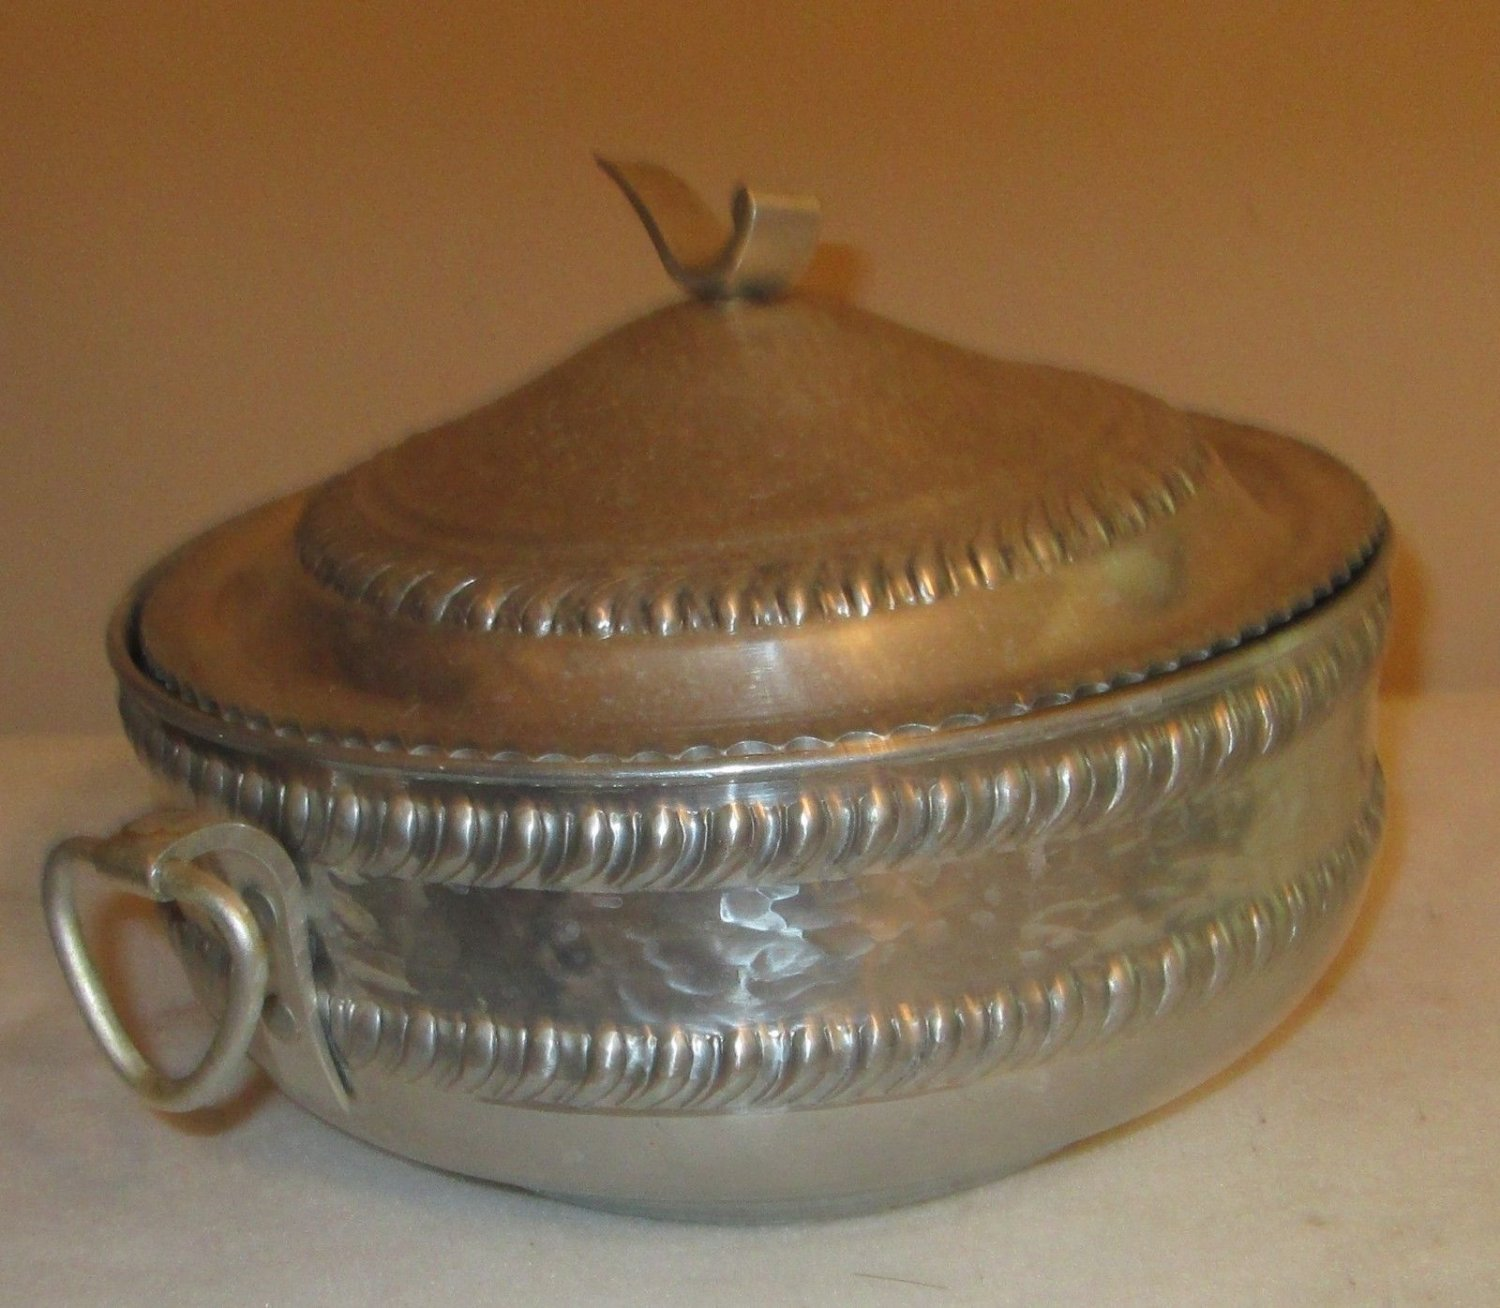 VINTAGE HAMMERED ALUMINUM 2 1/2 QUART POT PAN LID SERVING COOKWARE